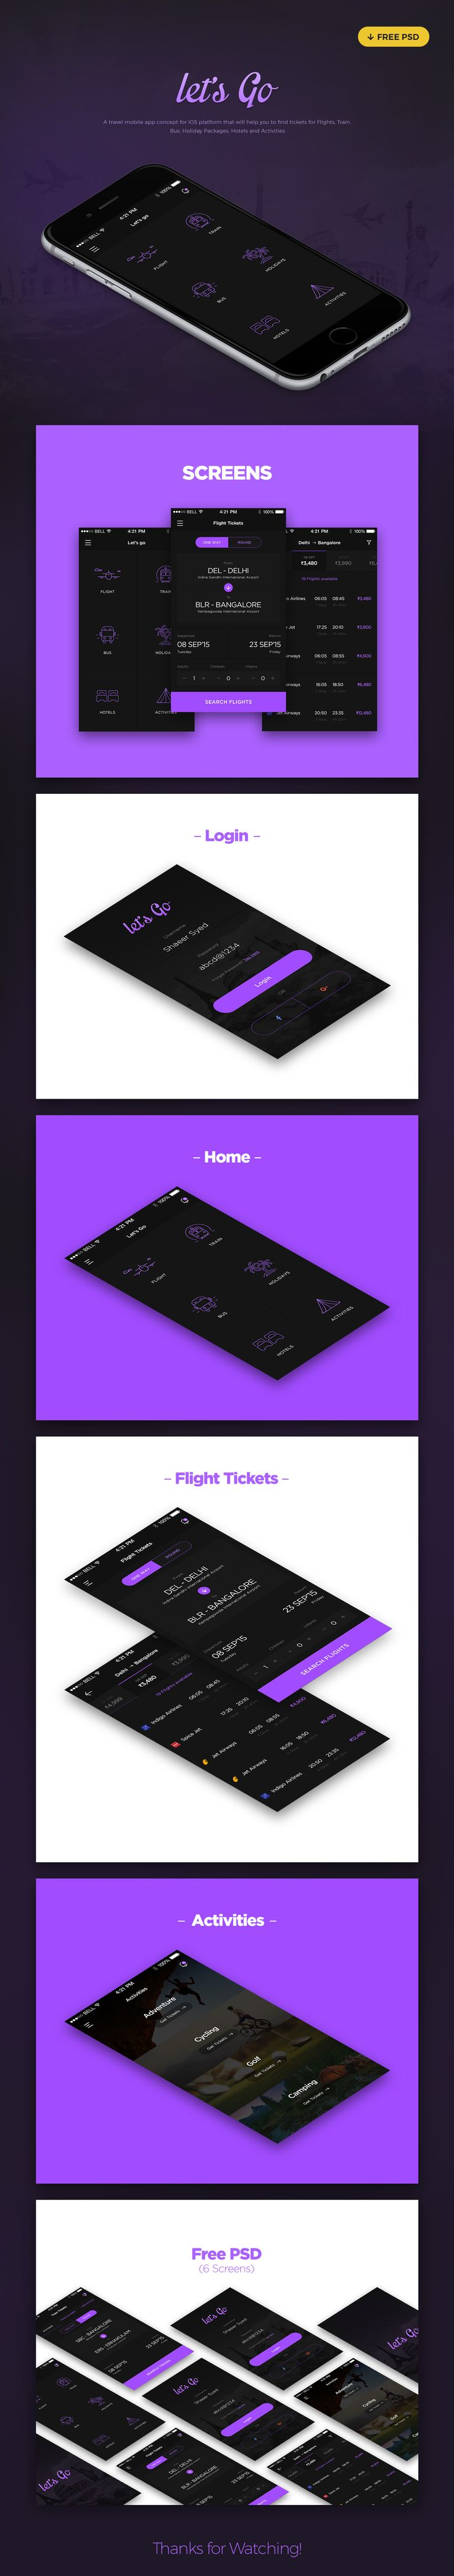 Let's Go Travel App - Free PSD on Behance